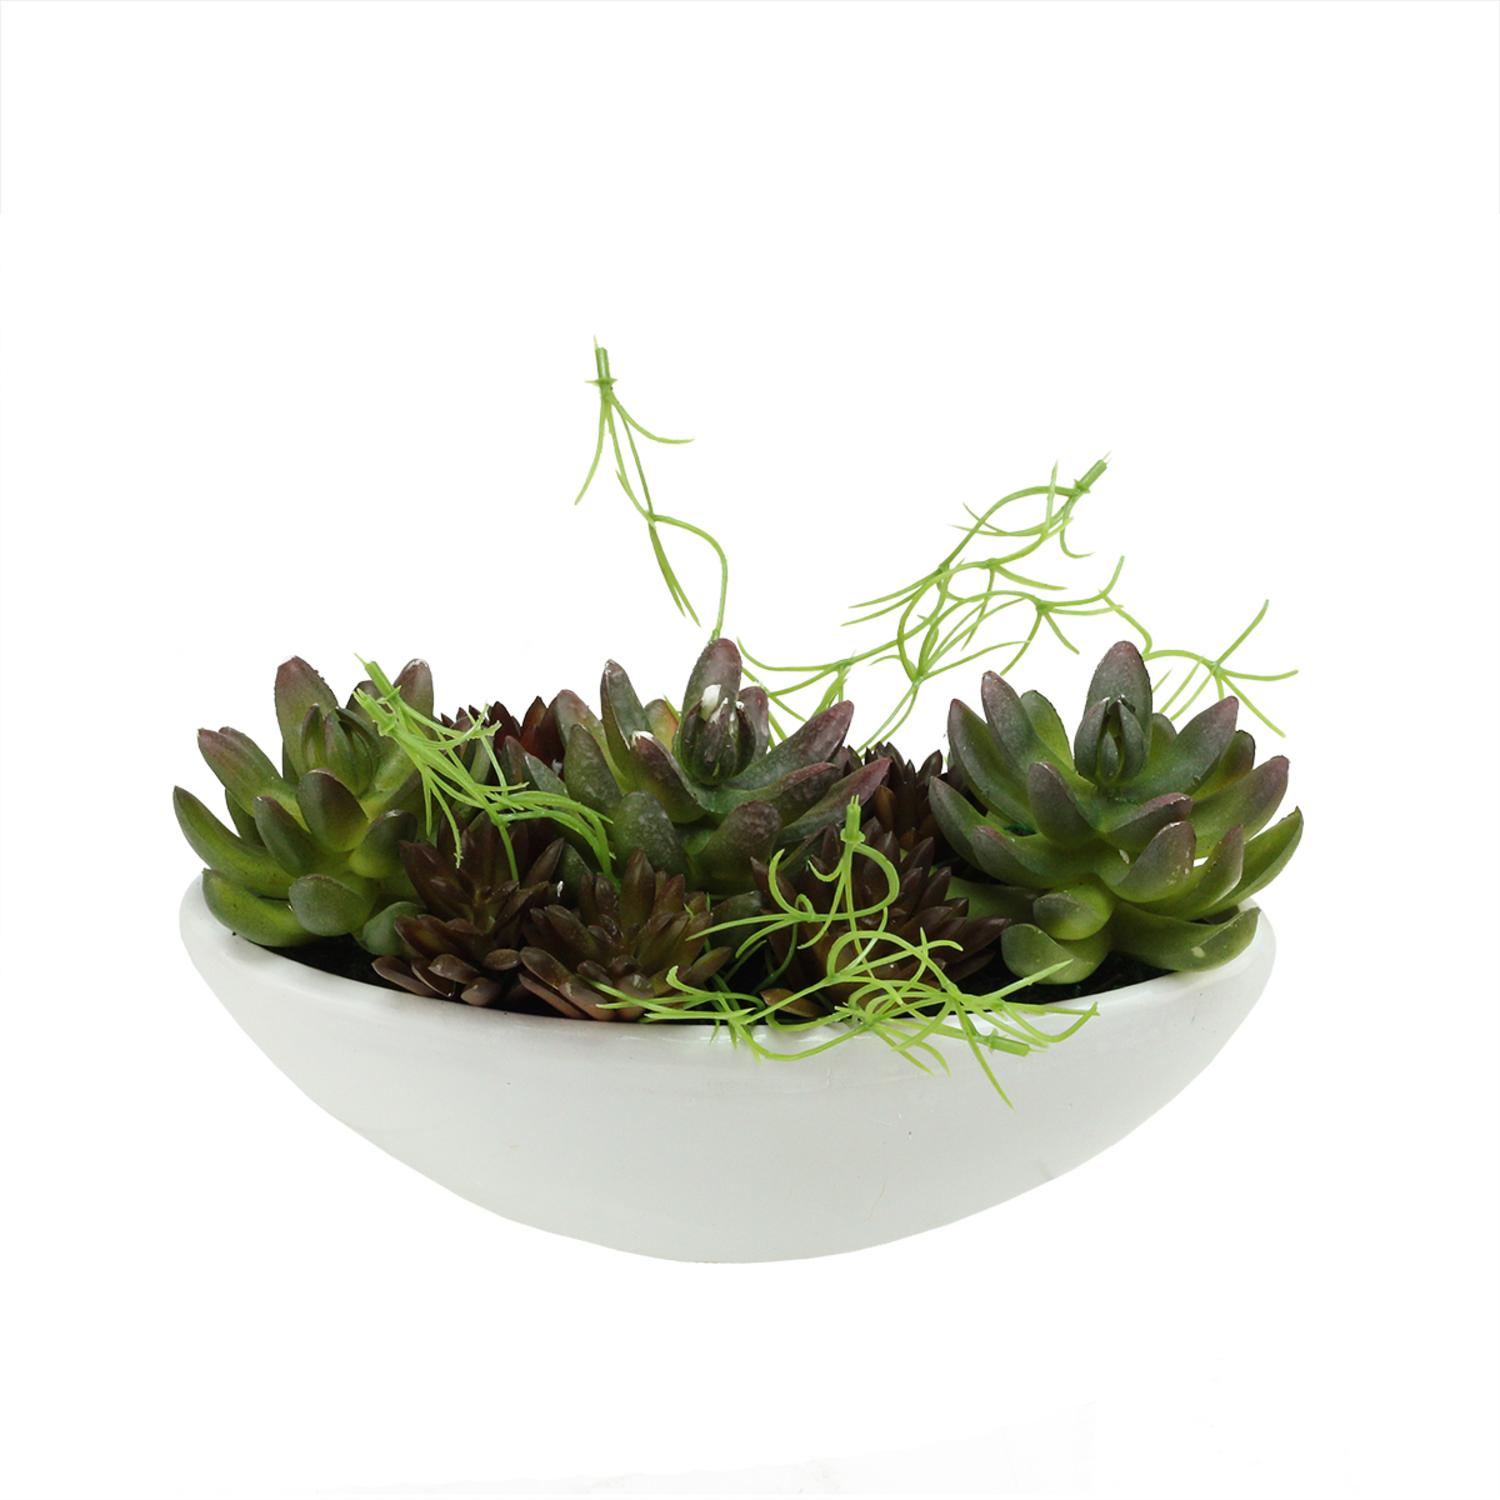 "8.5"" Artificial Mixed Green and Red Succulent Plants in a Decorative White Oval Pot"